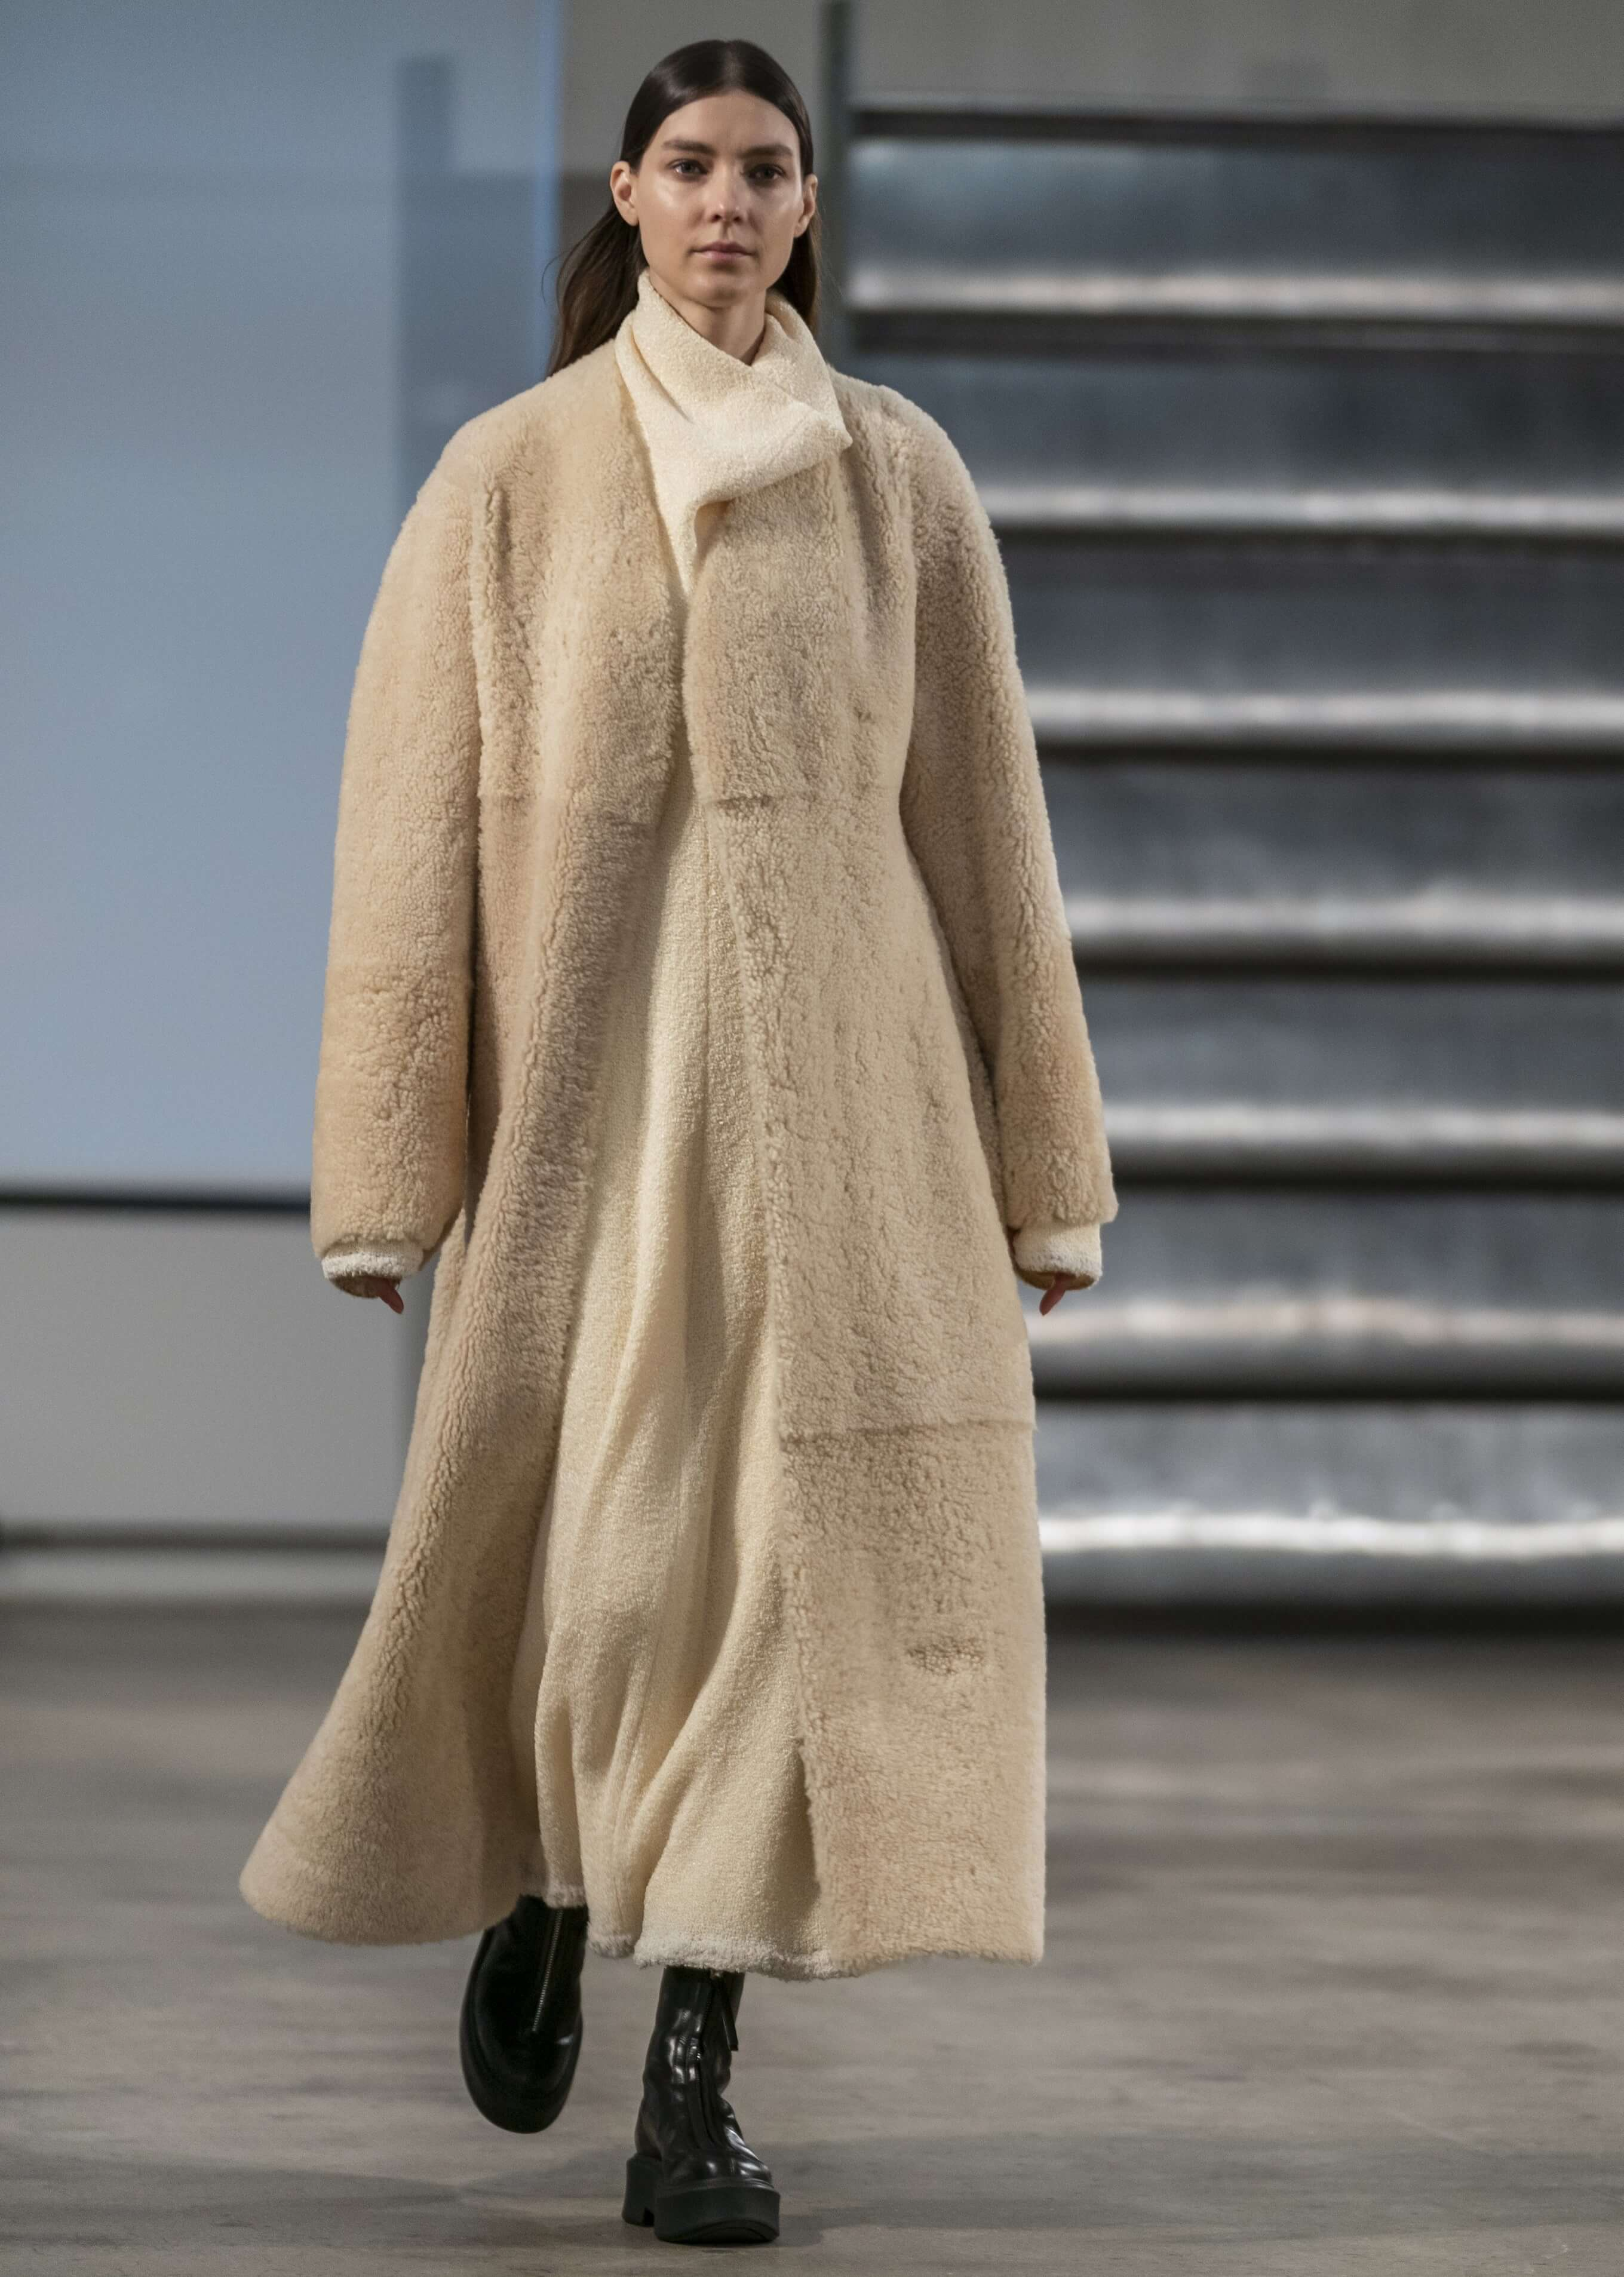 The Row Pre-Fall 2020 Collection | LES FAÇONS